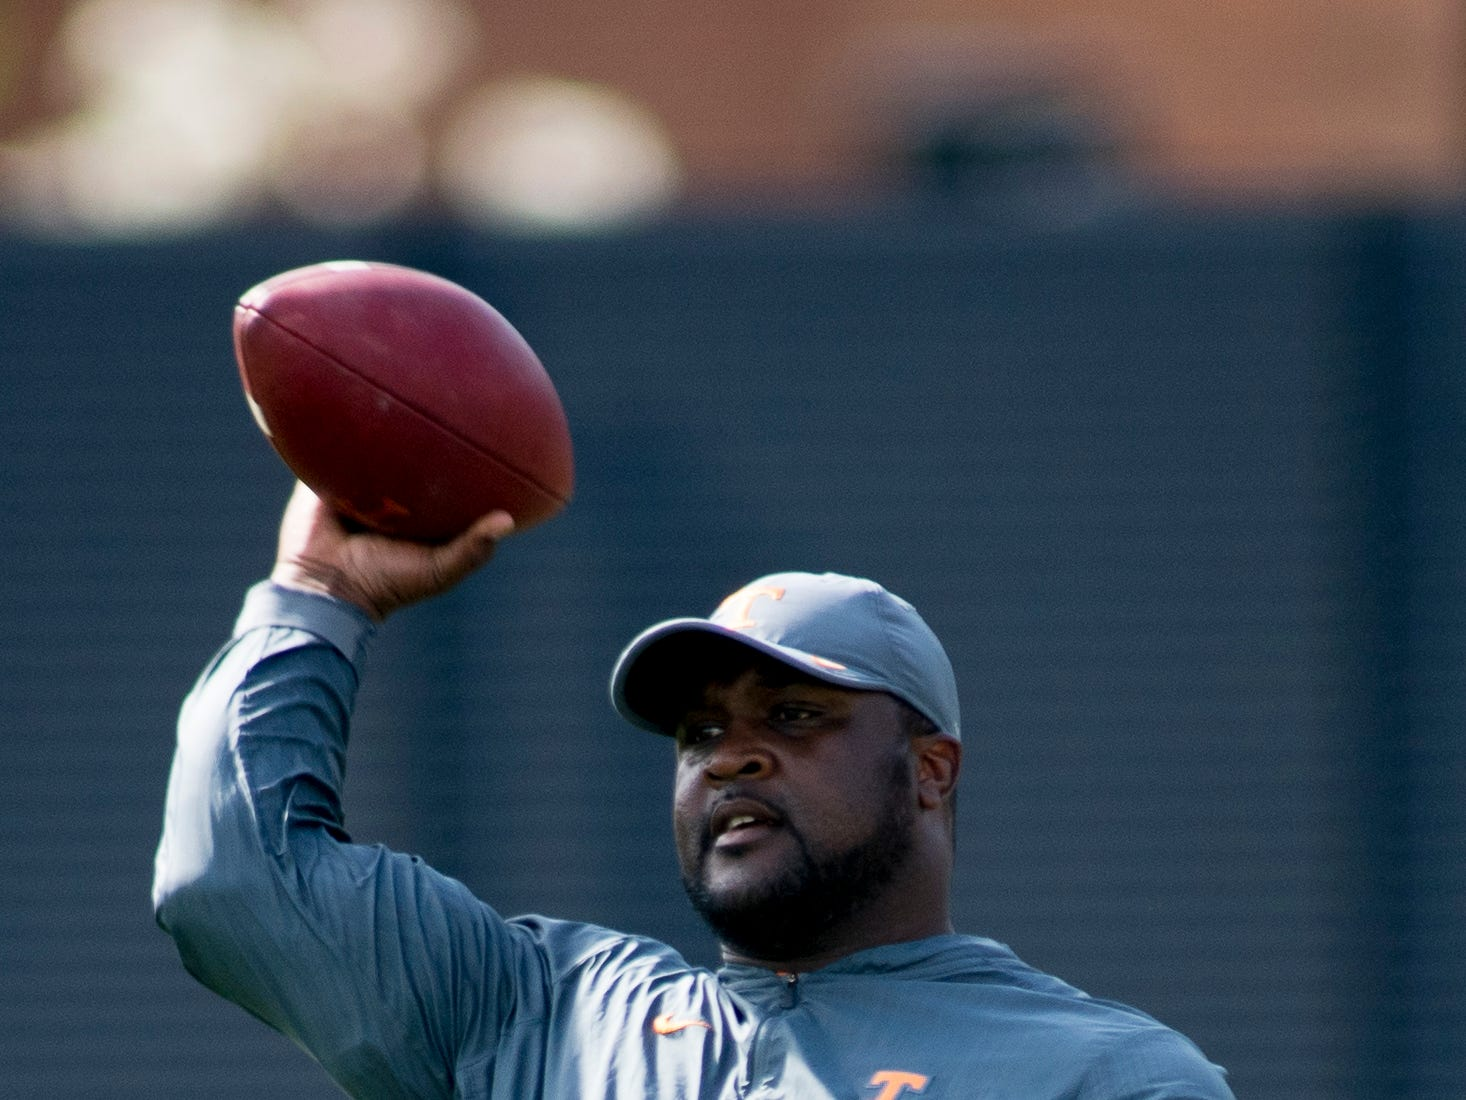 Tennessee Assistant Head Coach Tee Martin throws a pass during Tennessee spring practice at Haslam Field in Knoxville, Tennessee on Thursday, April 11, 2019.